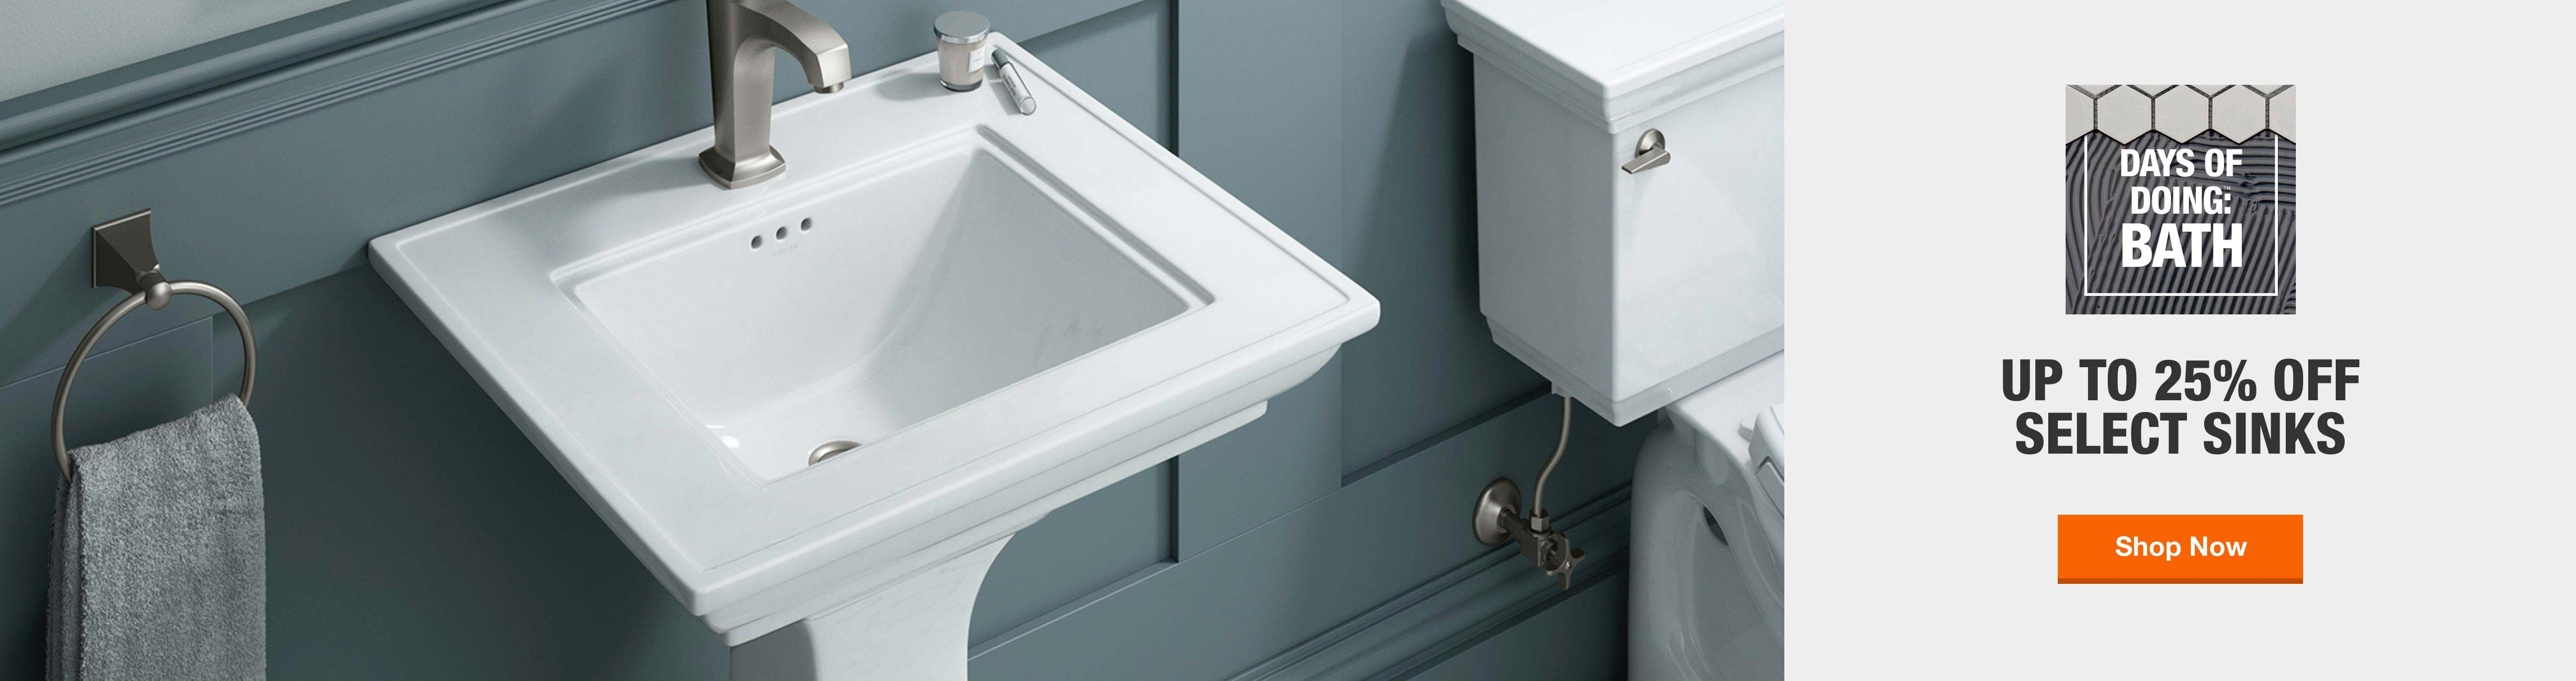 Up to 25% off select sinks